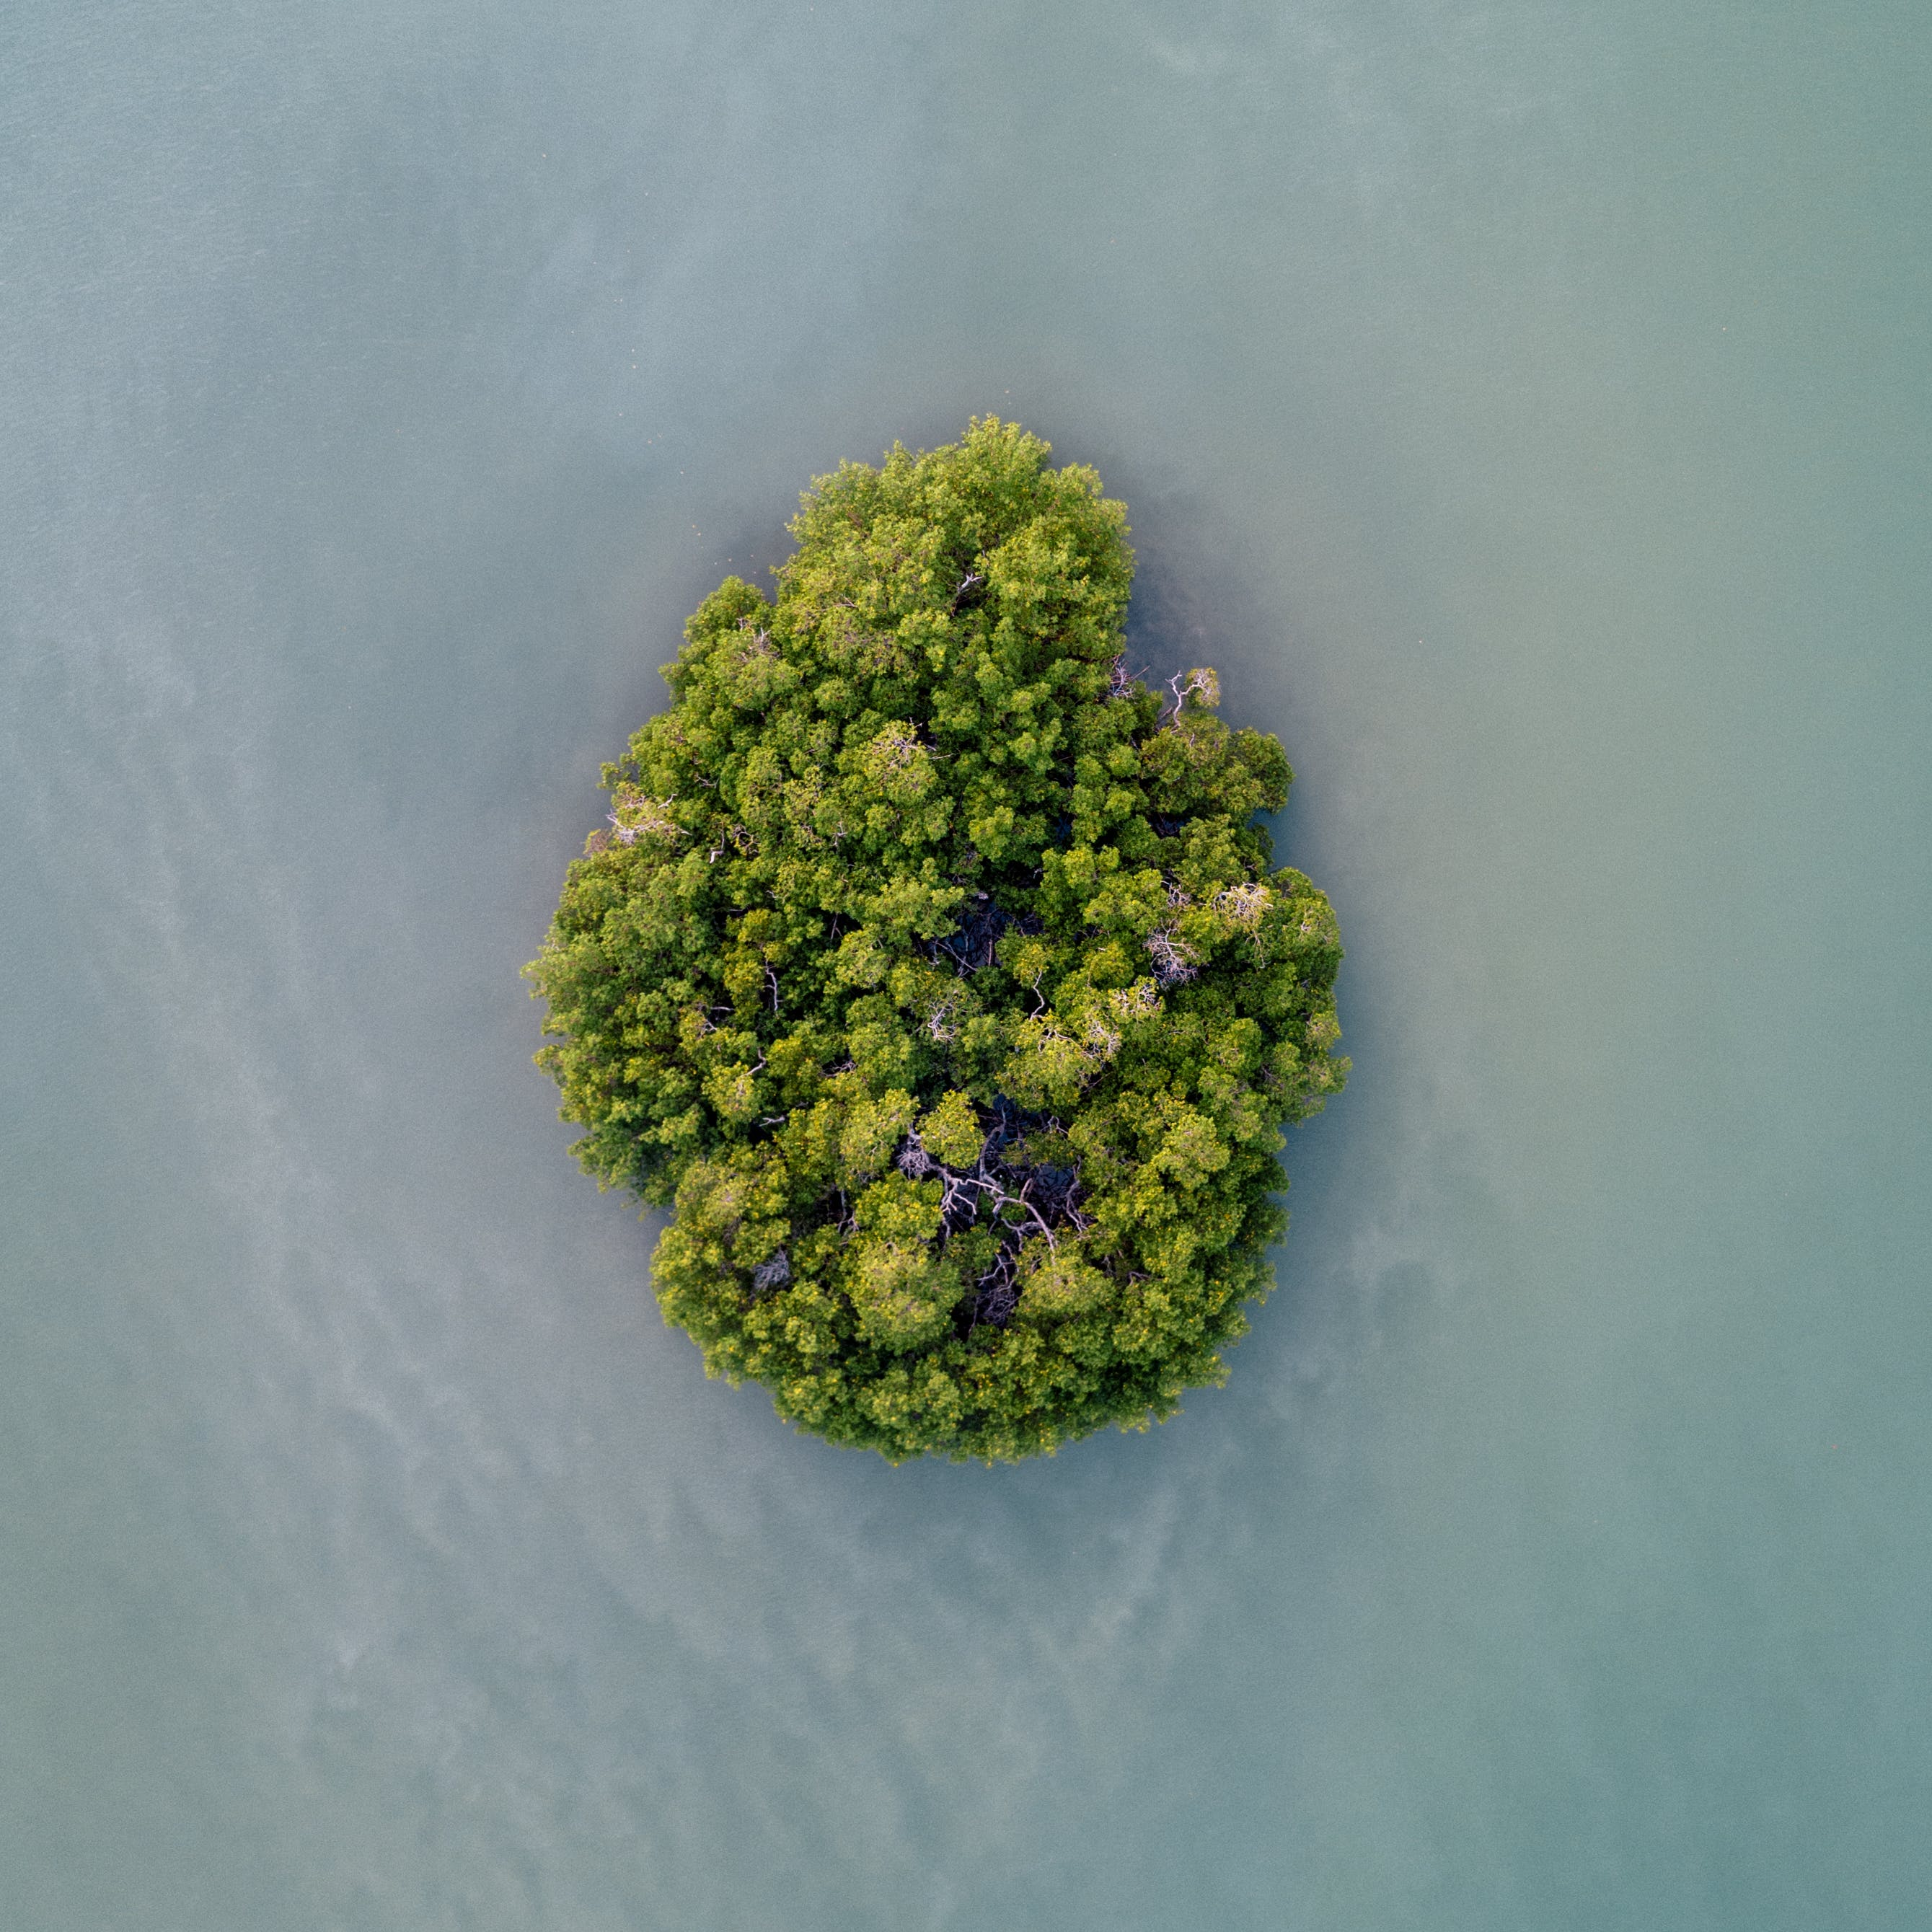 Free stock photo of water, trees, island, grow